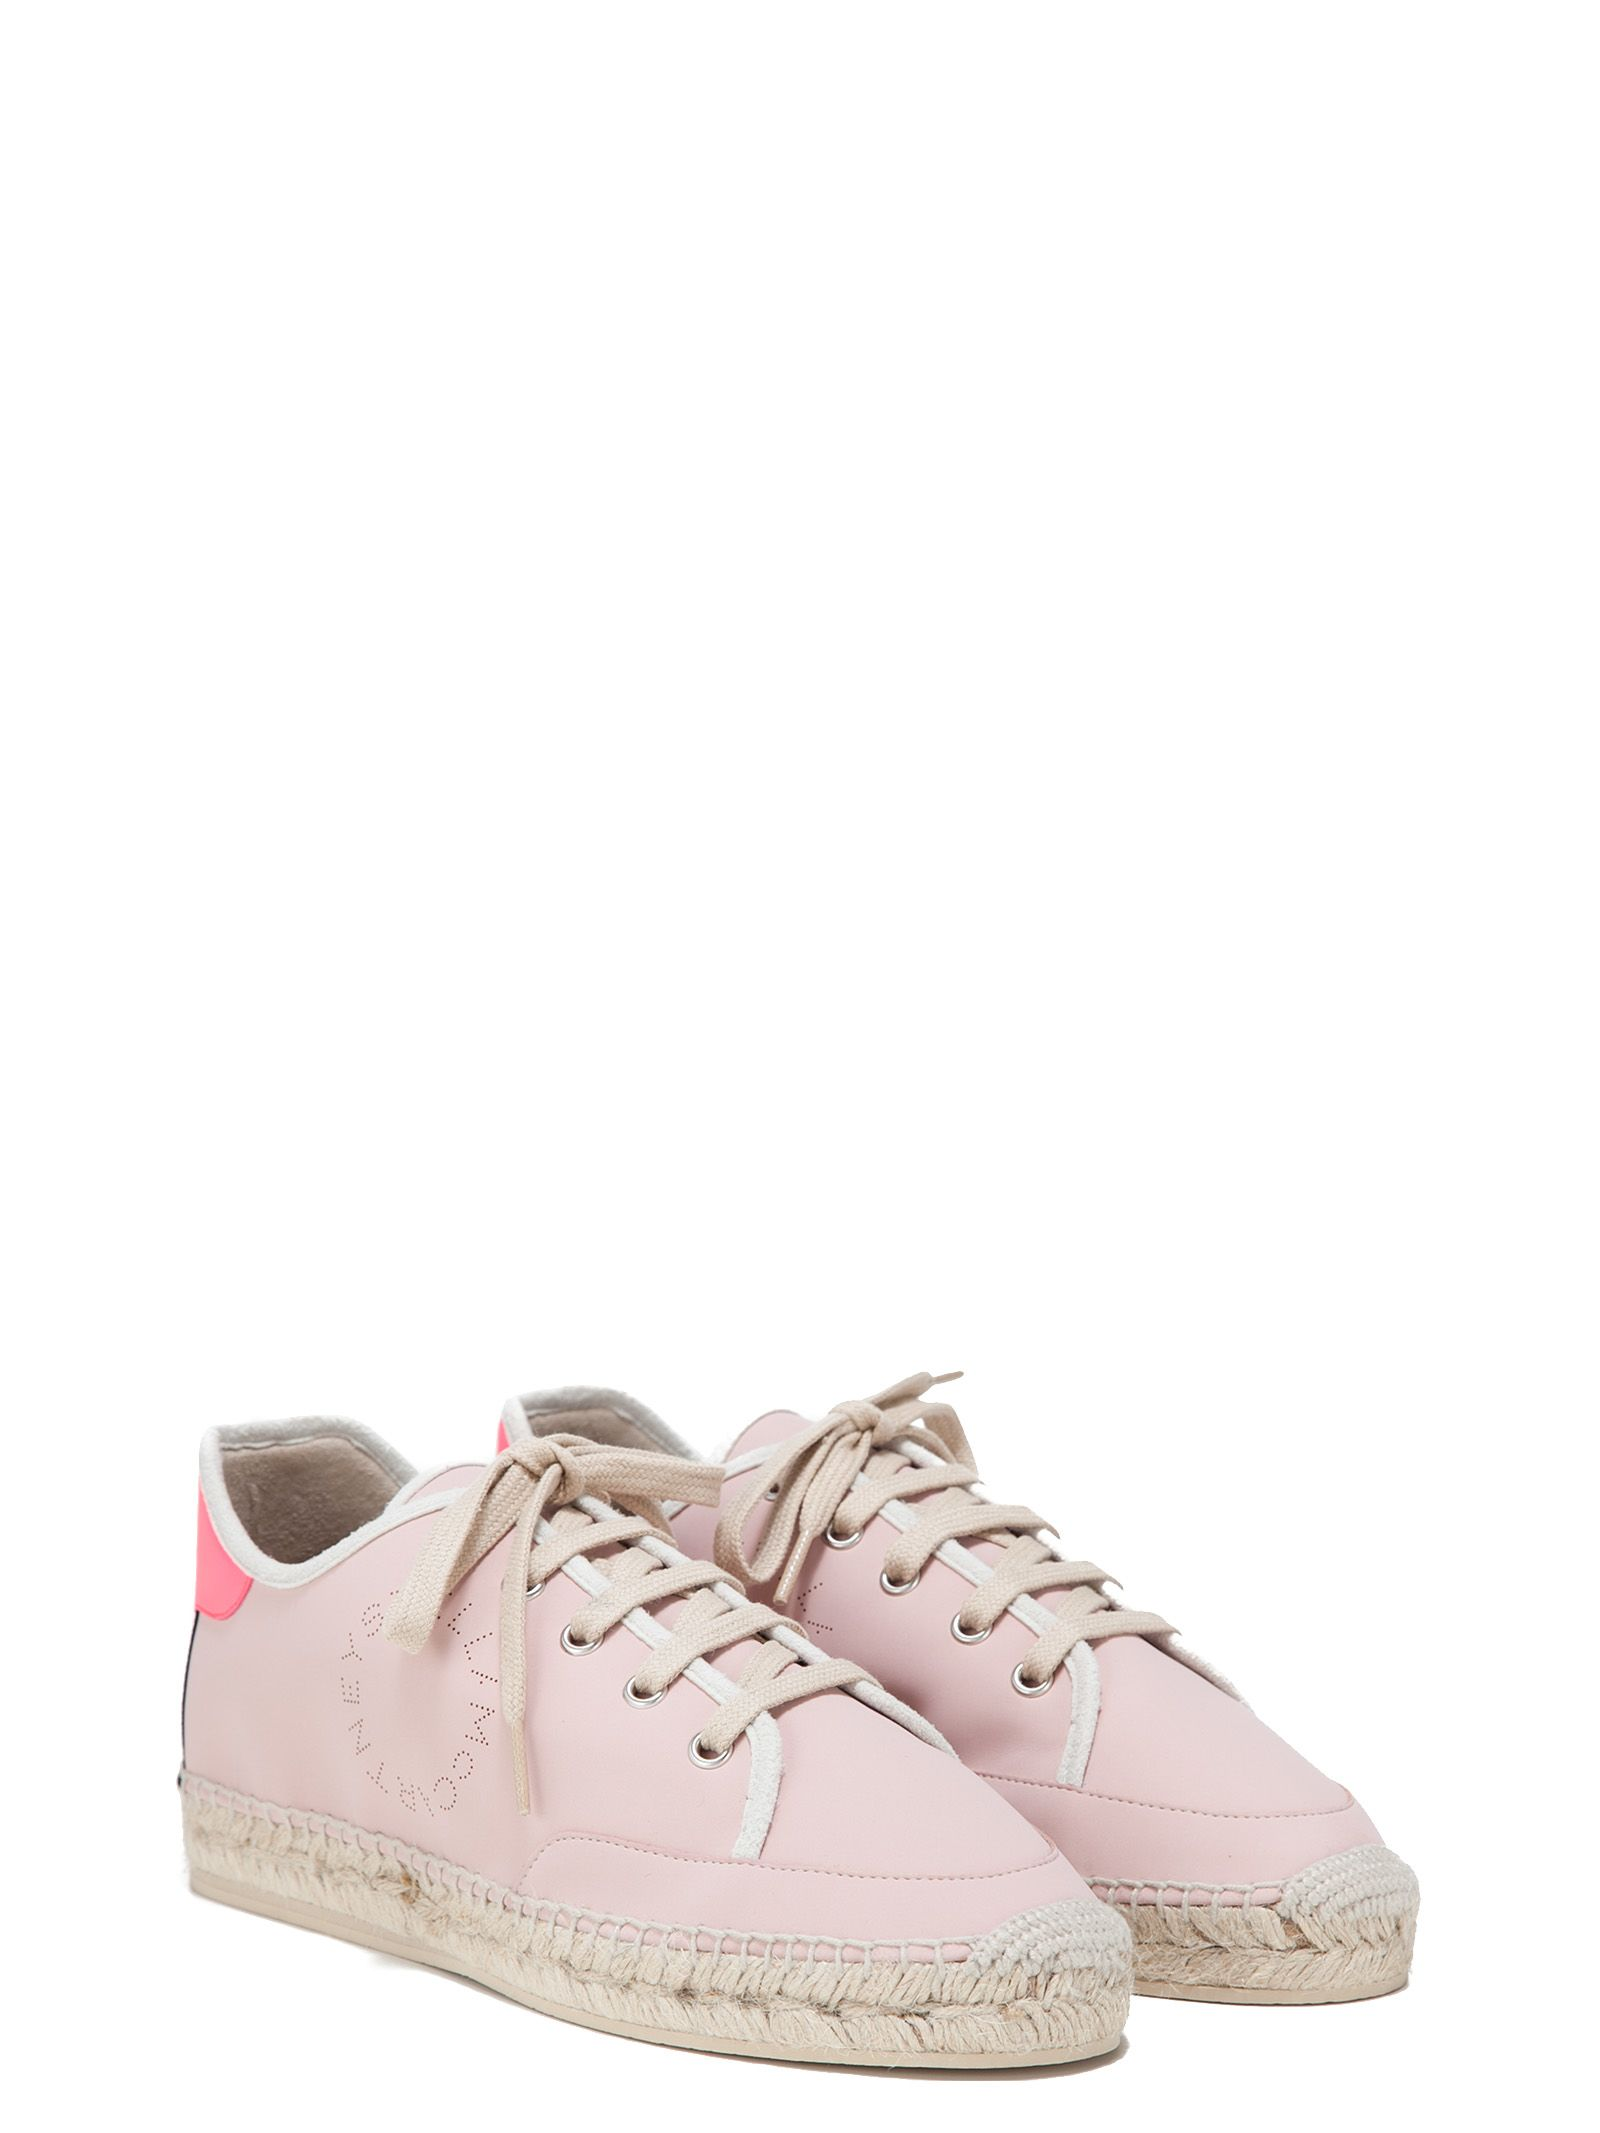 Stella Mccartney Baskets Espadrilles - Rose Et Violet hDLql4BJP9